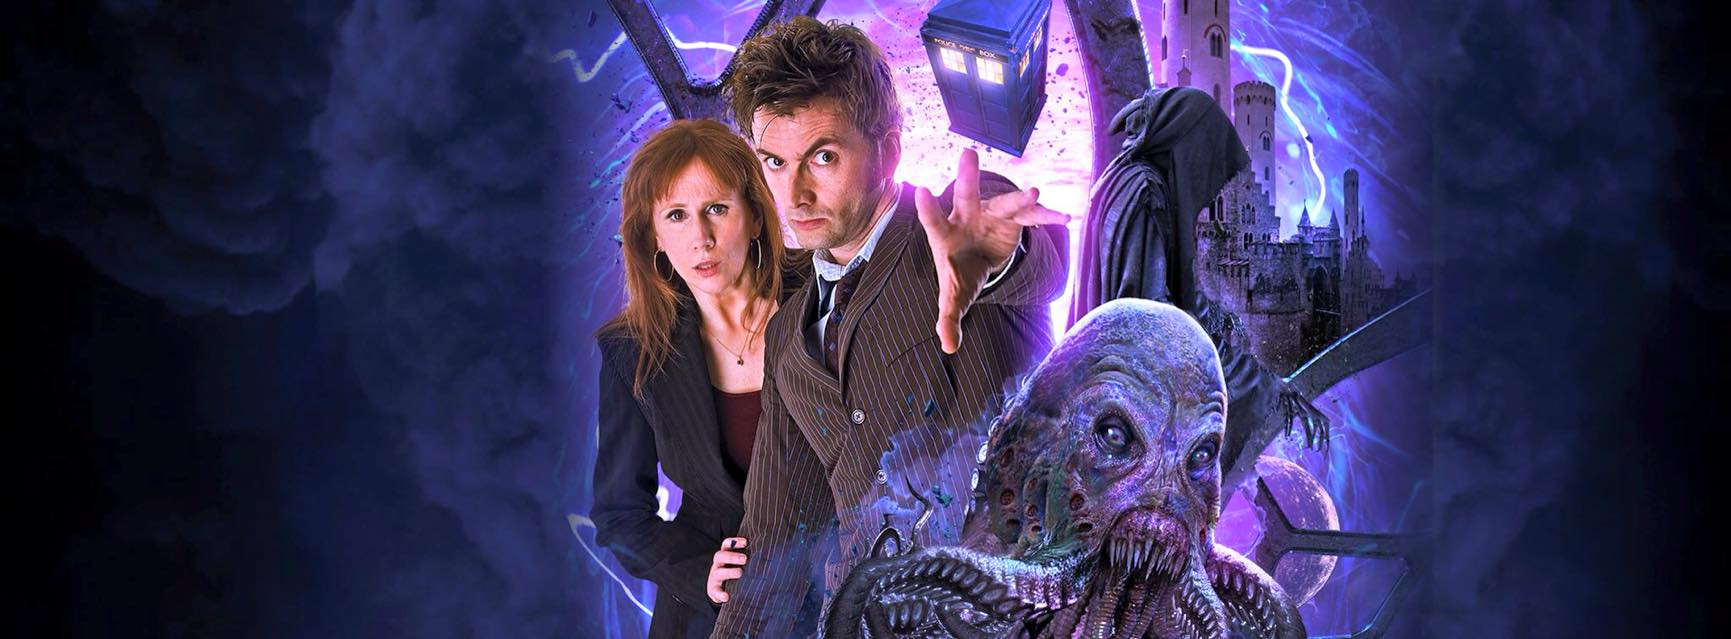 David-Tennant-Catherine-Tate-Big-Finish-Doctor-Who-Brasil